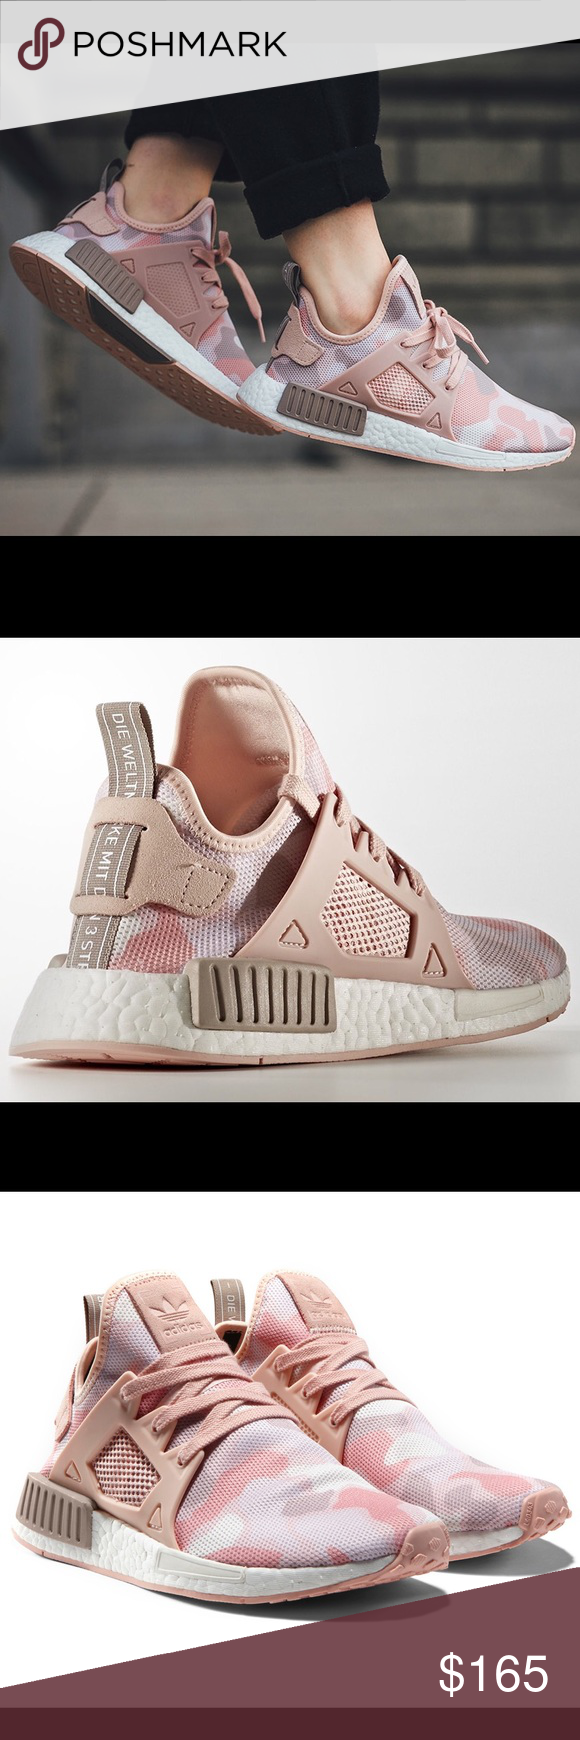 47977eaaee9de pink adidas superstar women adidas nmd xr1 white duck camo Equipped ...